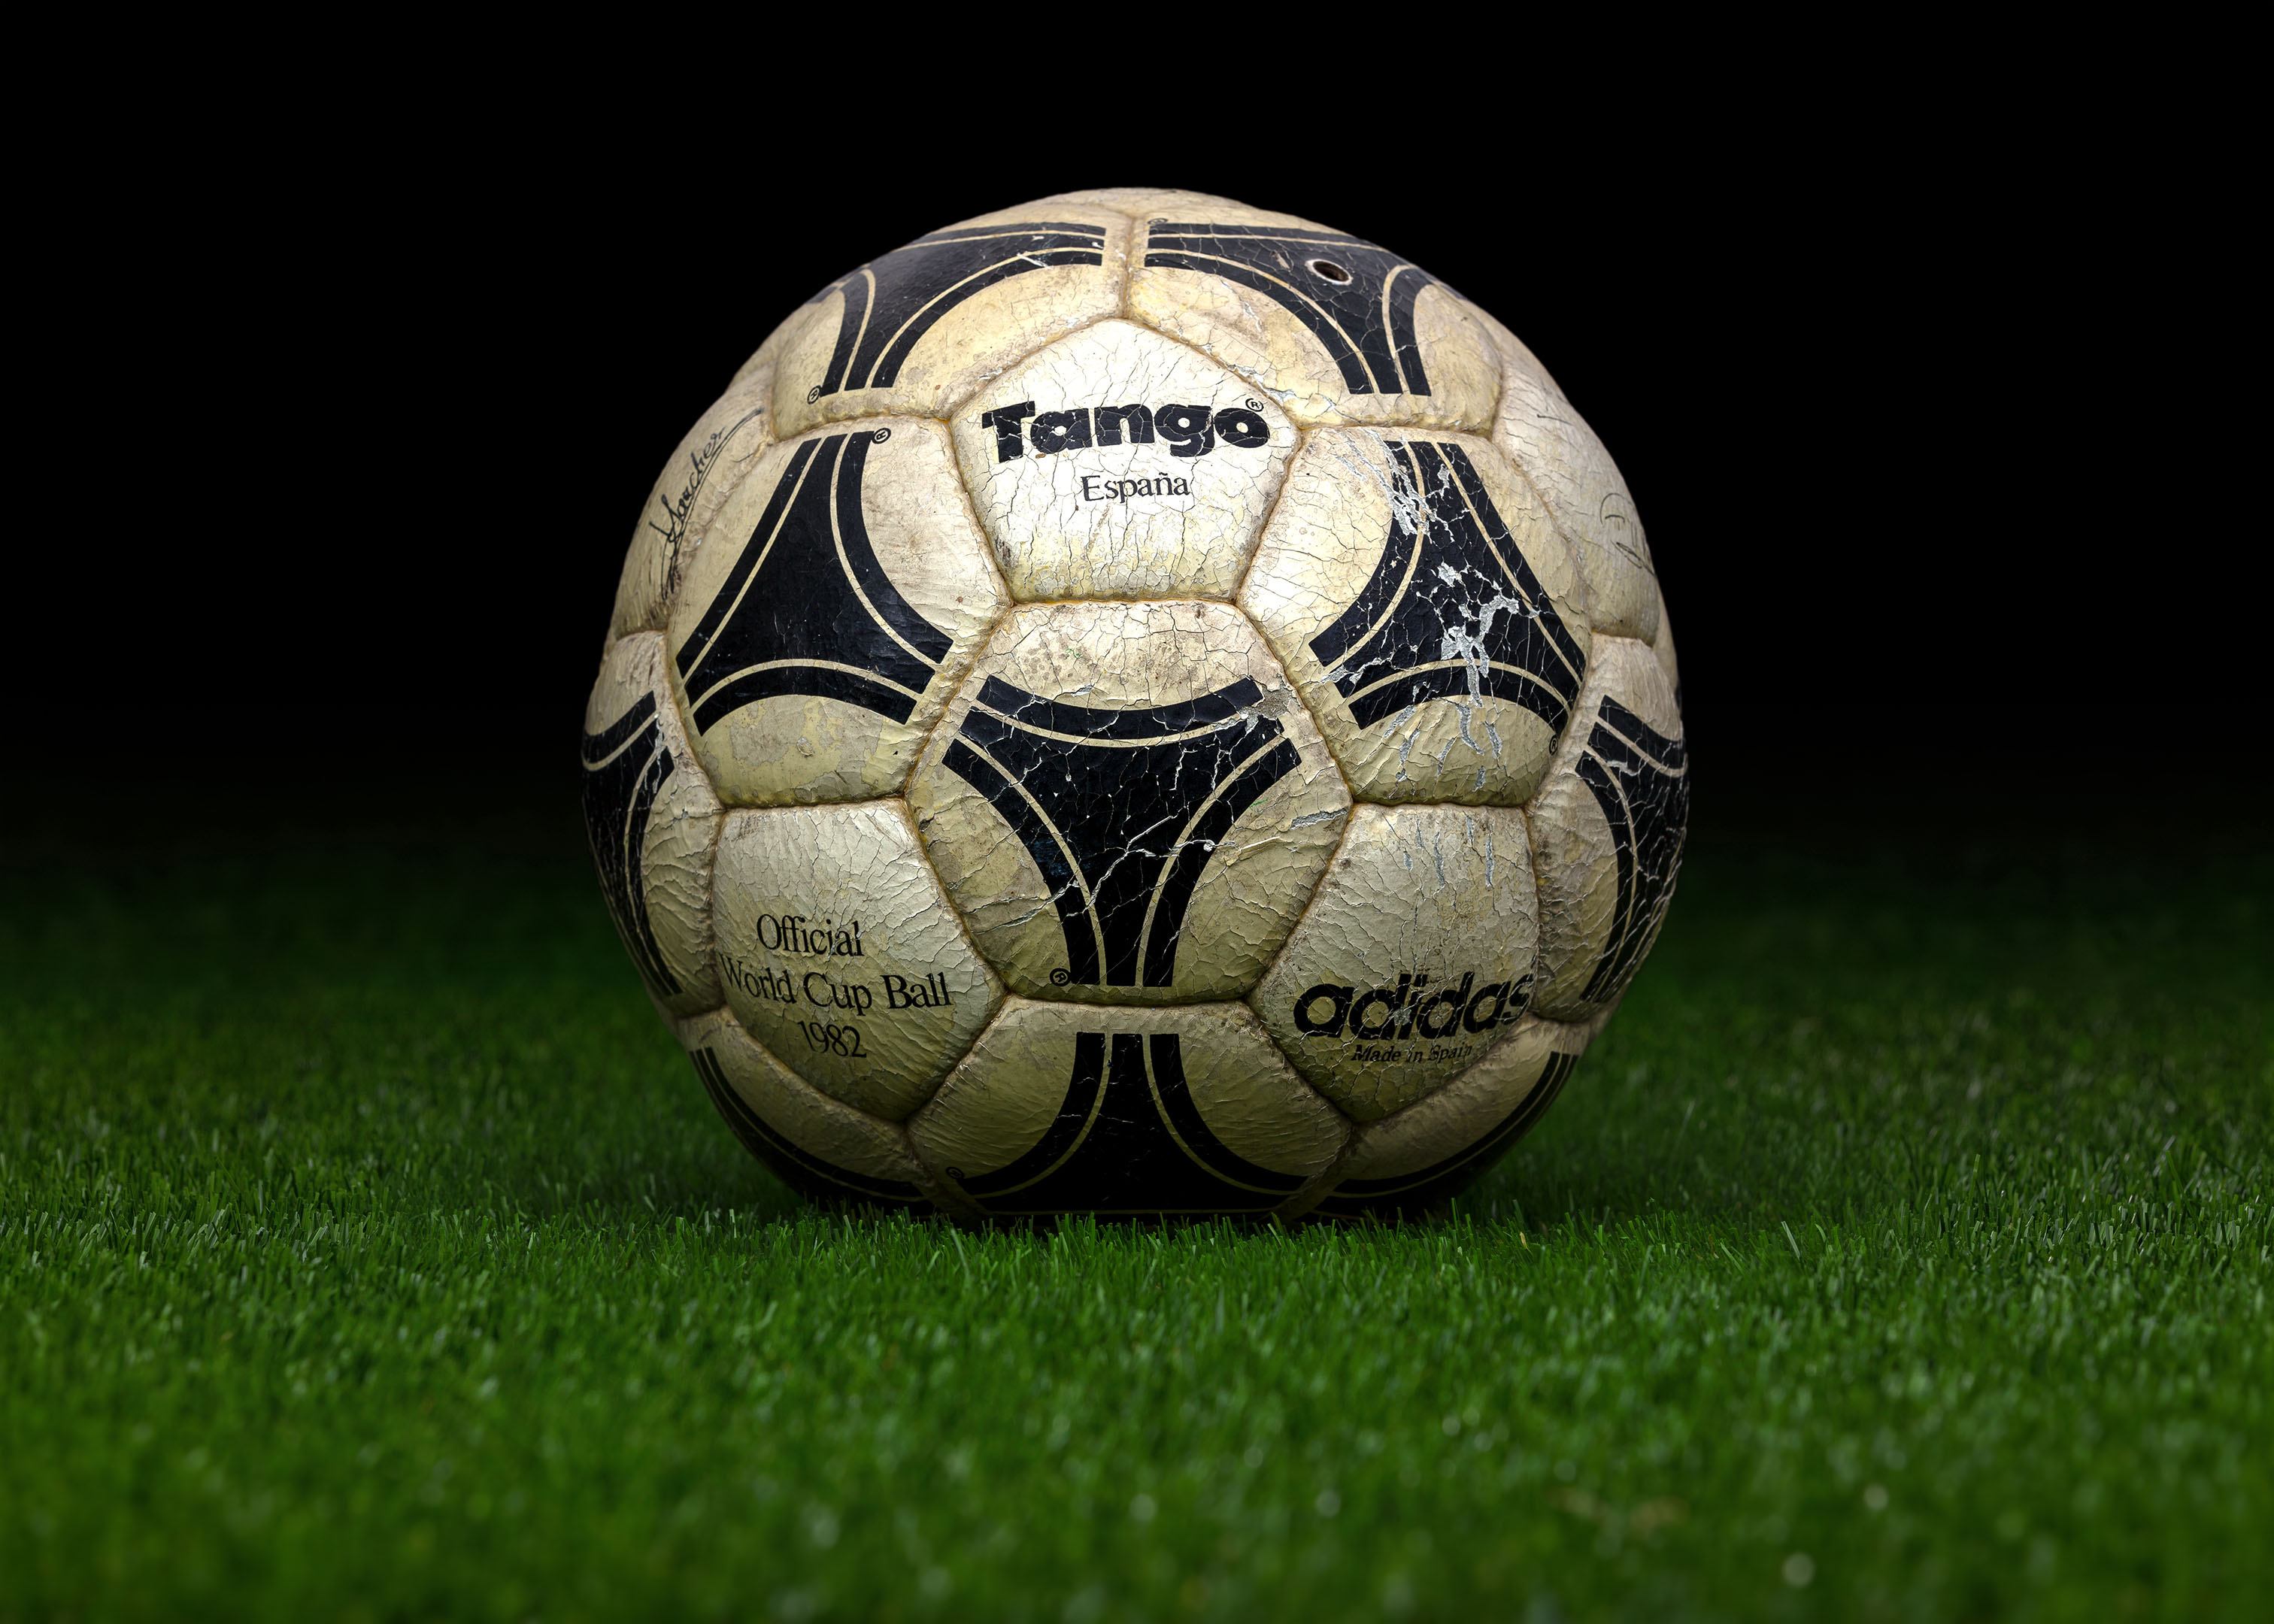 designer fashion thoughts on good texture Made in Spain match ball FIFA World Cup 1982 Spain Adidas ...